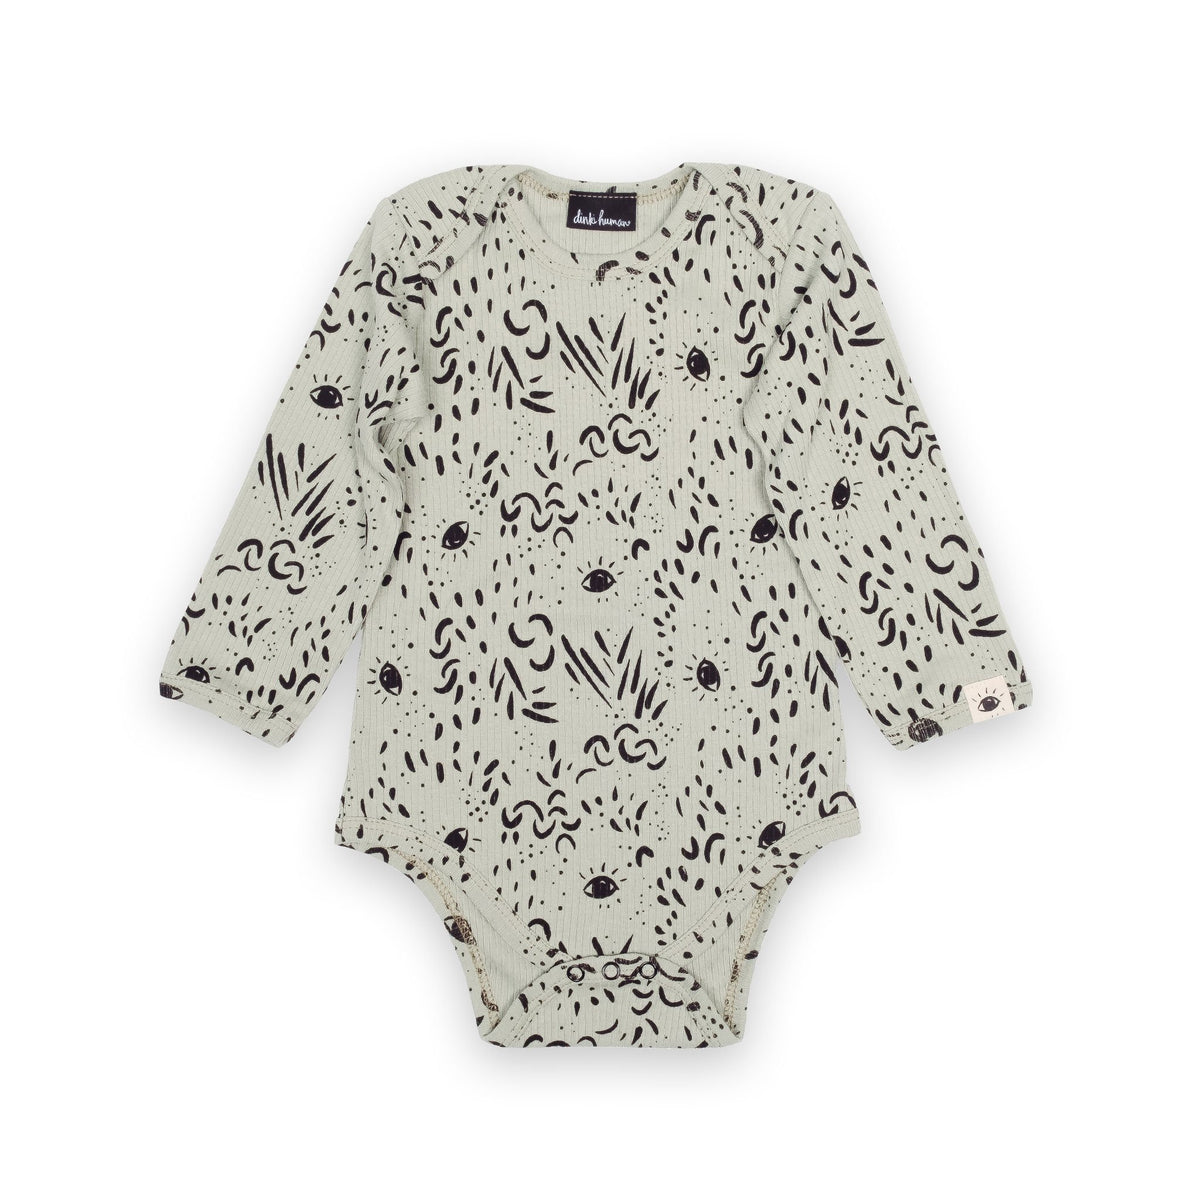 'Eyes' Organic Cotton Baby Bodysuit - Dinki Human Organic Kids Clothing